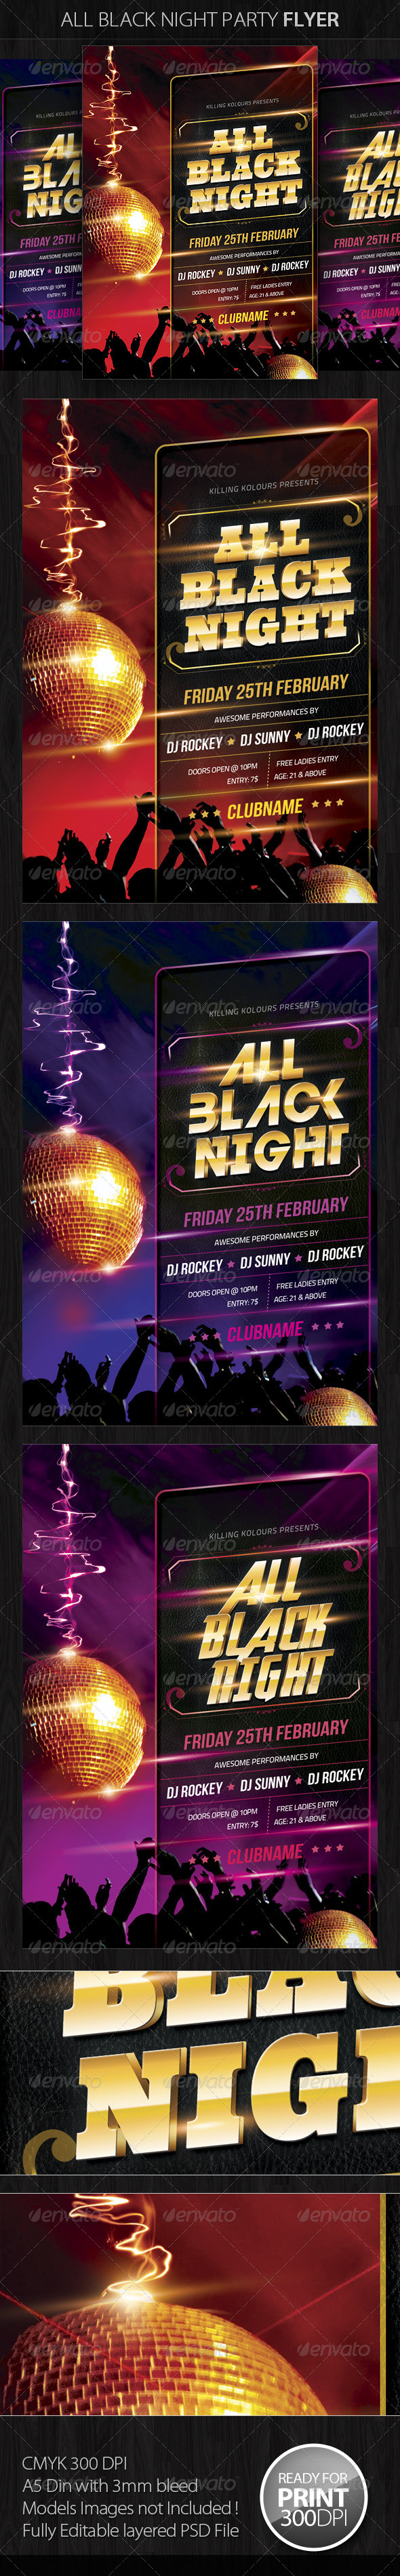 All Black Night Party Flyer - Clubs & Parties Events